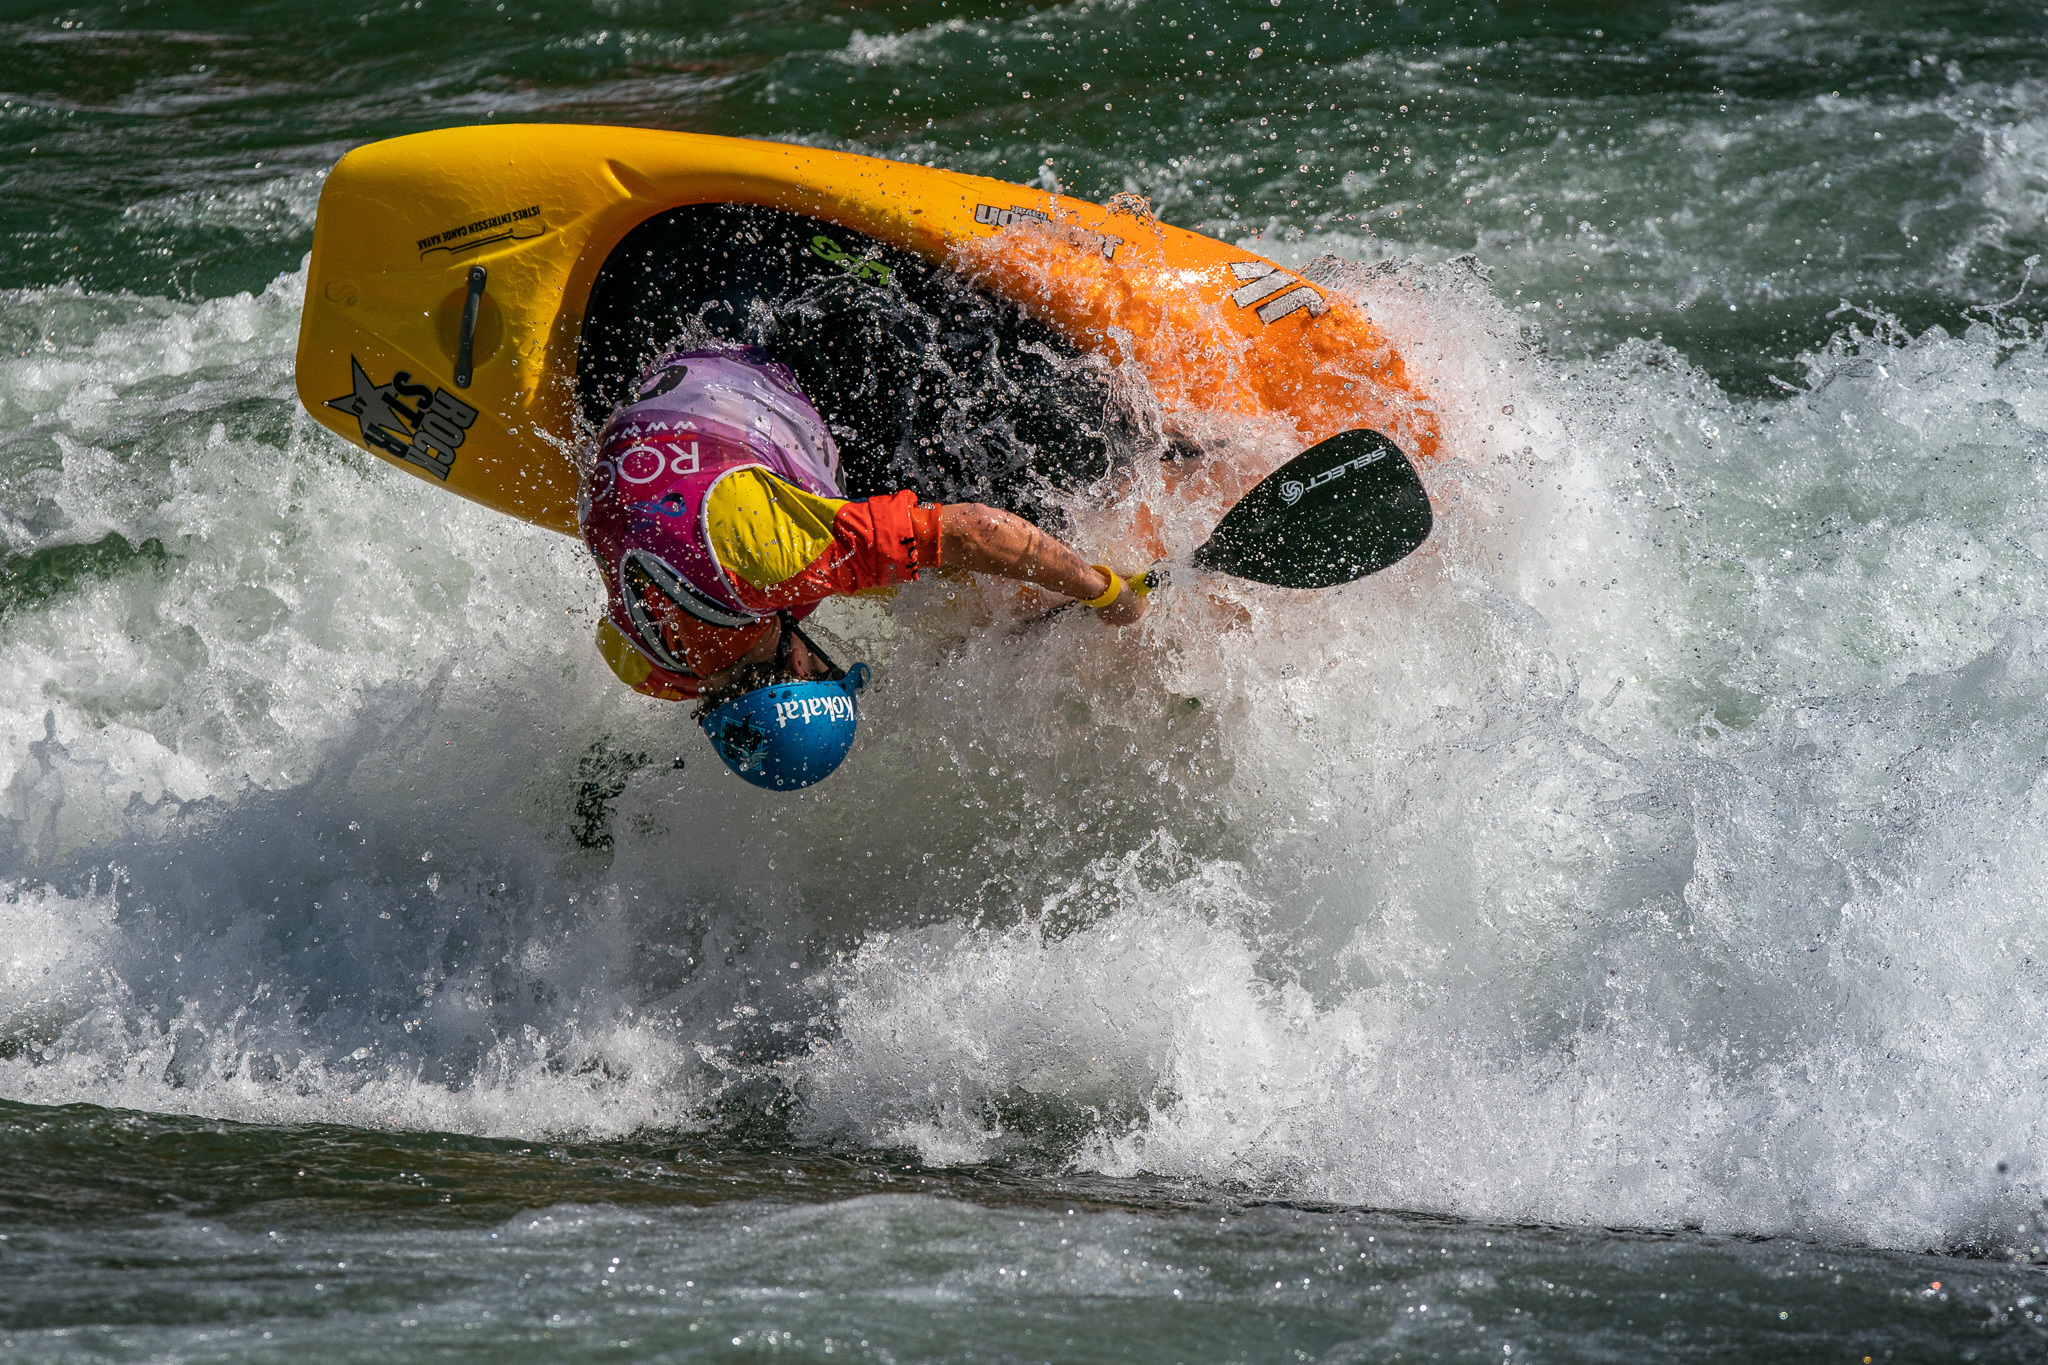 Tom Dolle from France takes 3rd in the quarter final rounds. ©Peter Holcombe:kayaksession.com